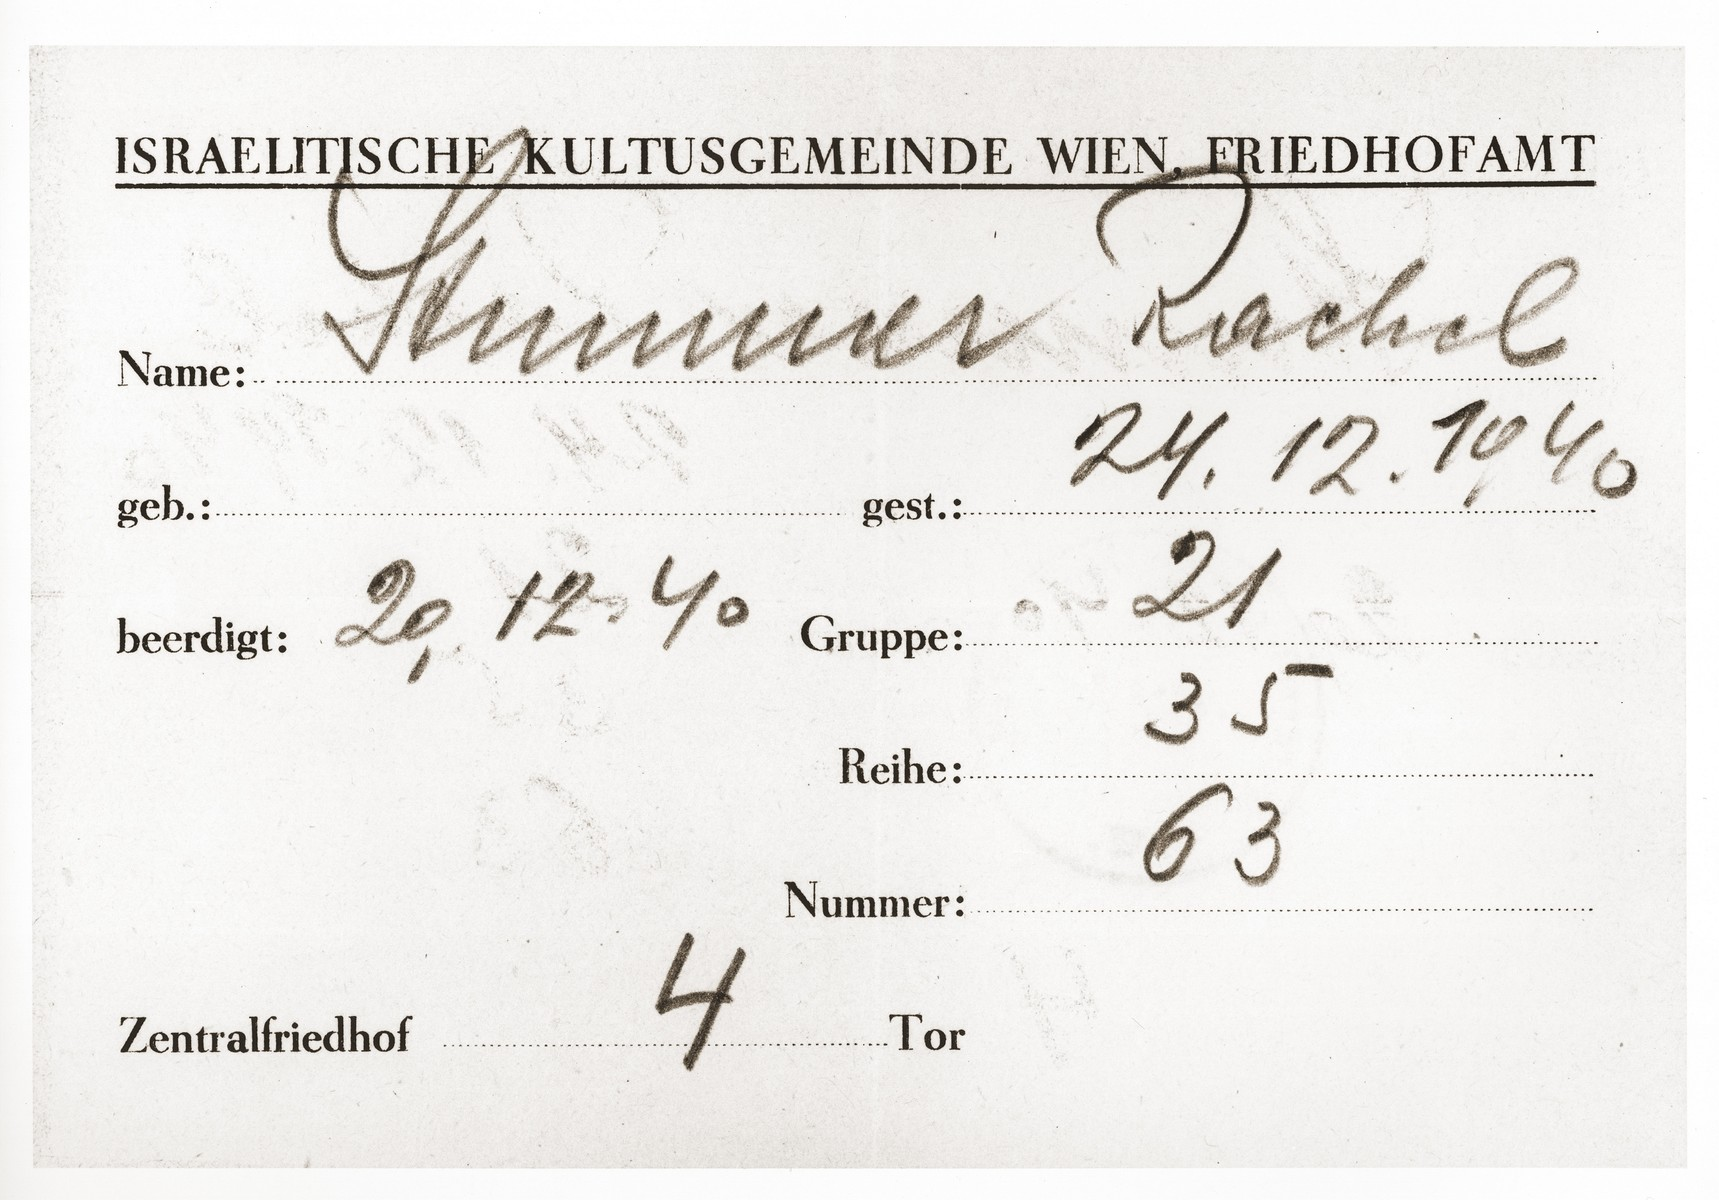 Death certificate issued by the Jewish Cemetery office of the Jewish community of Vienna for Rachel Stummer, who died on December 24, 1940.  The death certificate was sent to Viktor Stummer, the son of the deceased, an Austrian Jewish refugee in Shanghai.